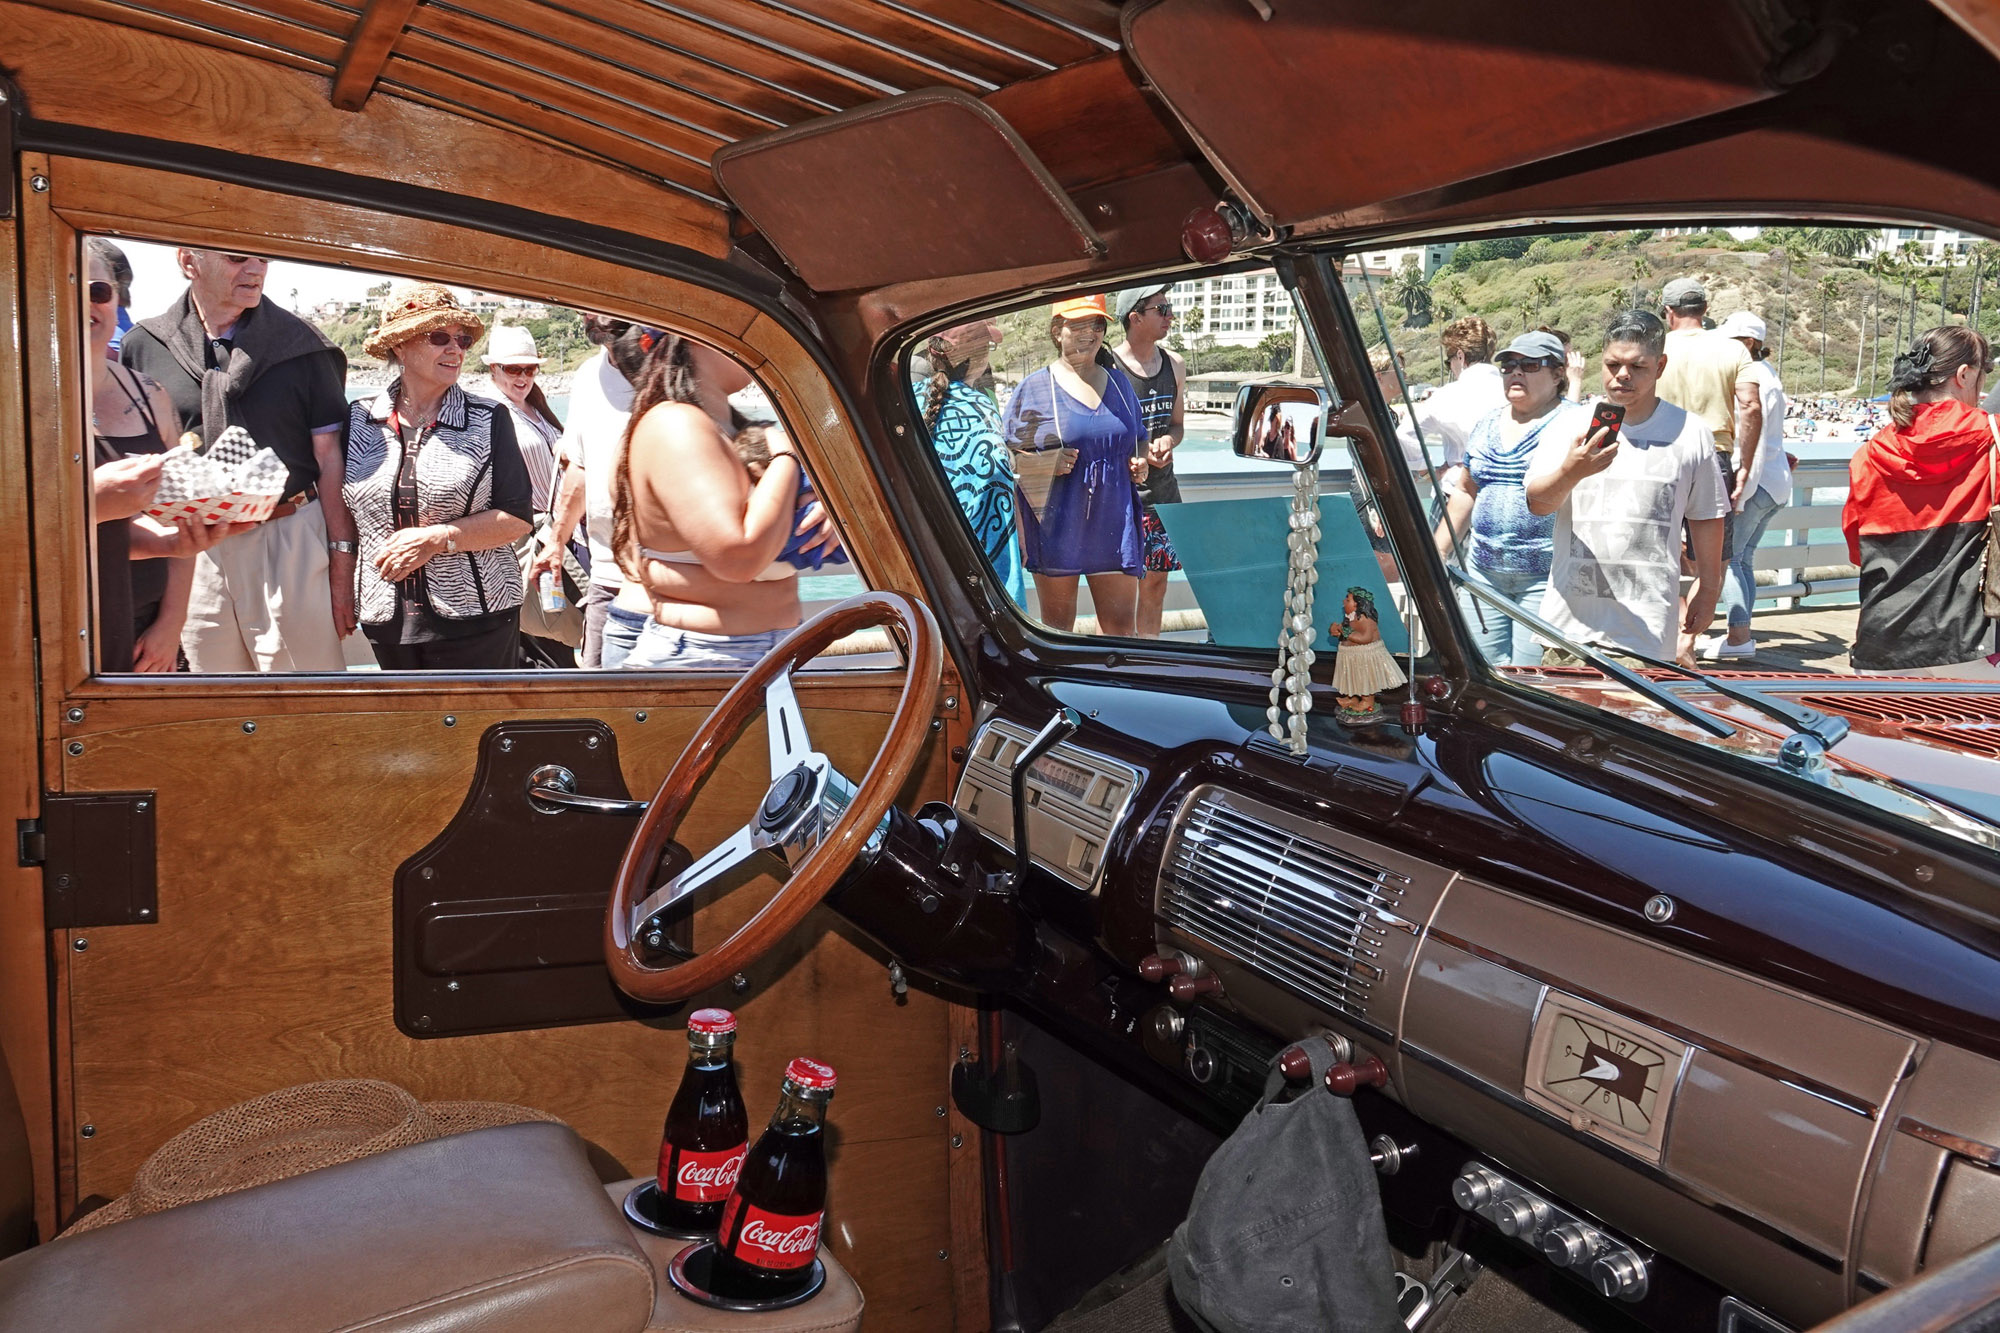 The Cokes are ready to roll, but the woodie sits empty, parked on the San Clemente Pier for the enjoyment of car lovers at the San Clemente Ocean Festival. Photo: Fred Swegles